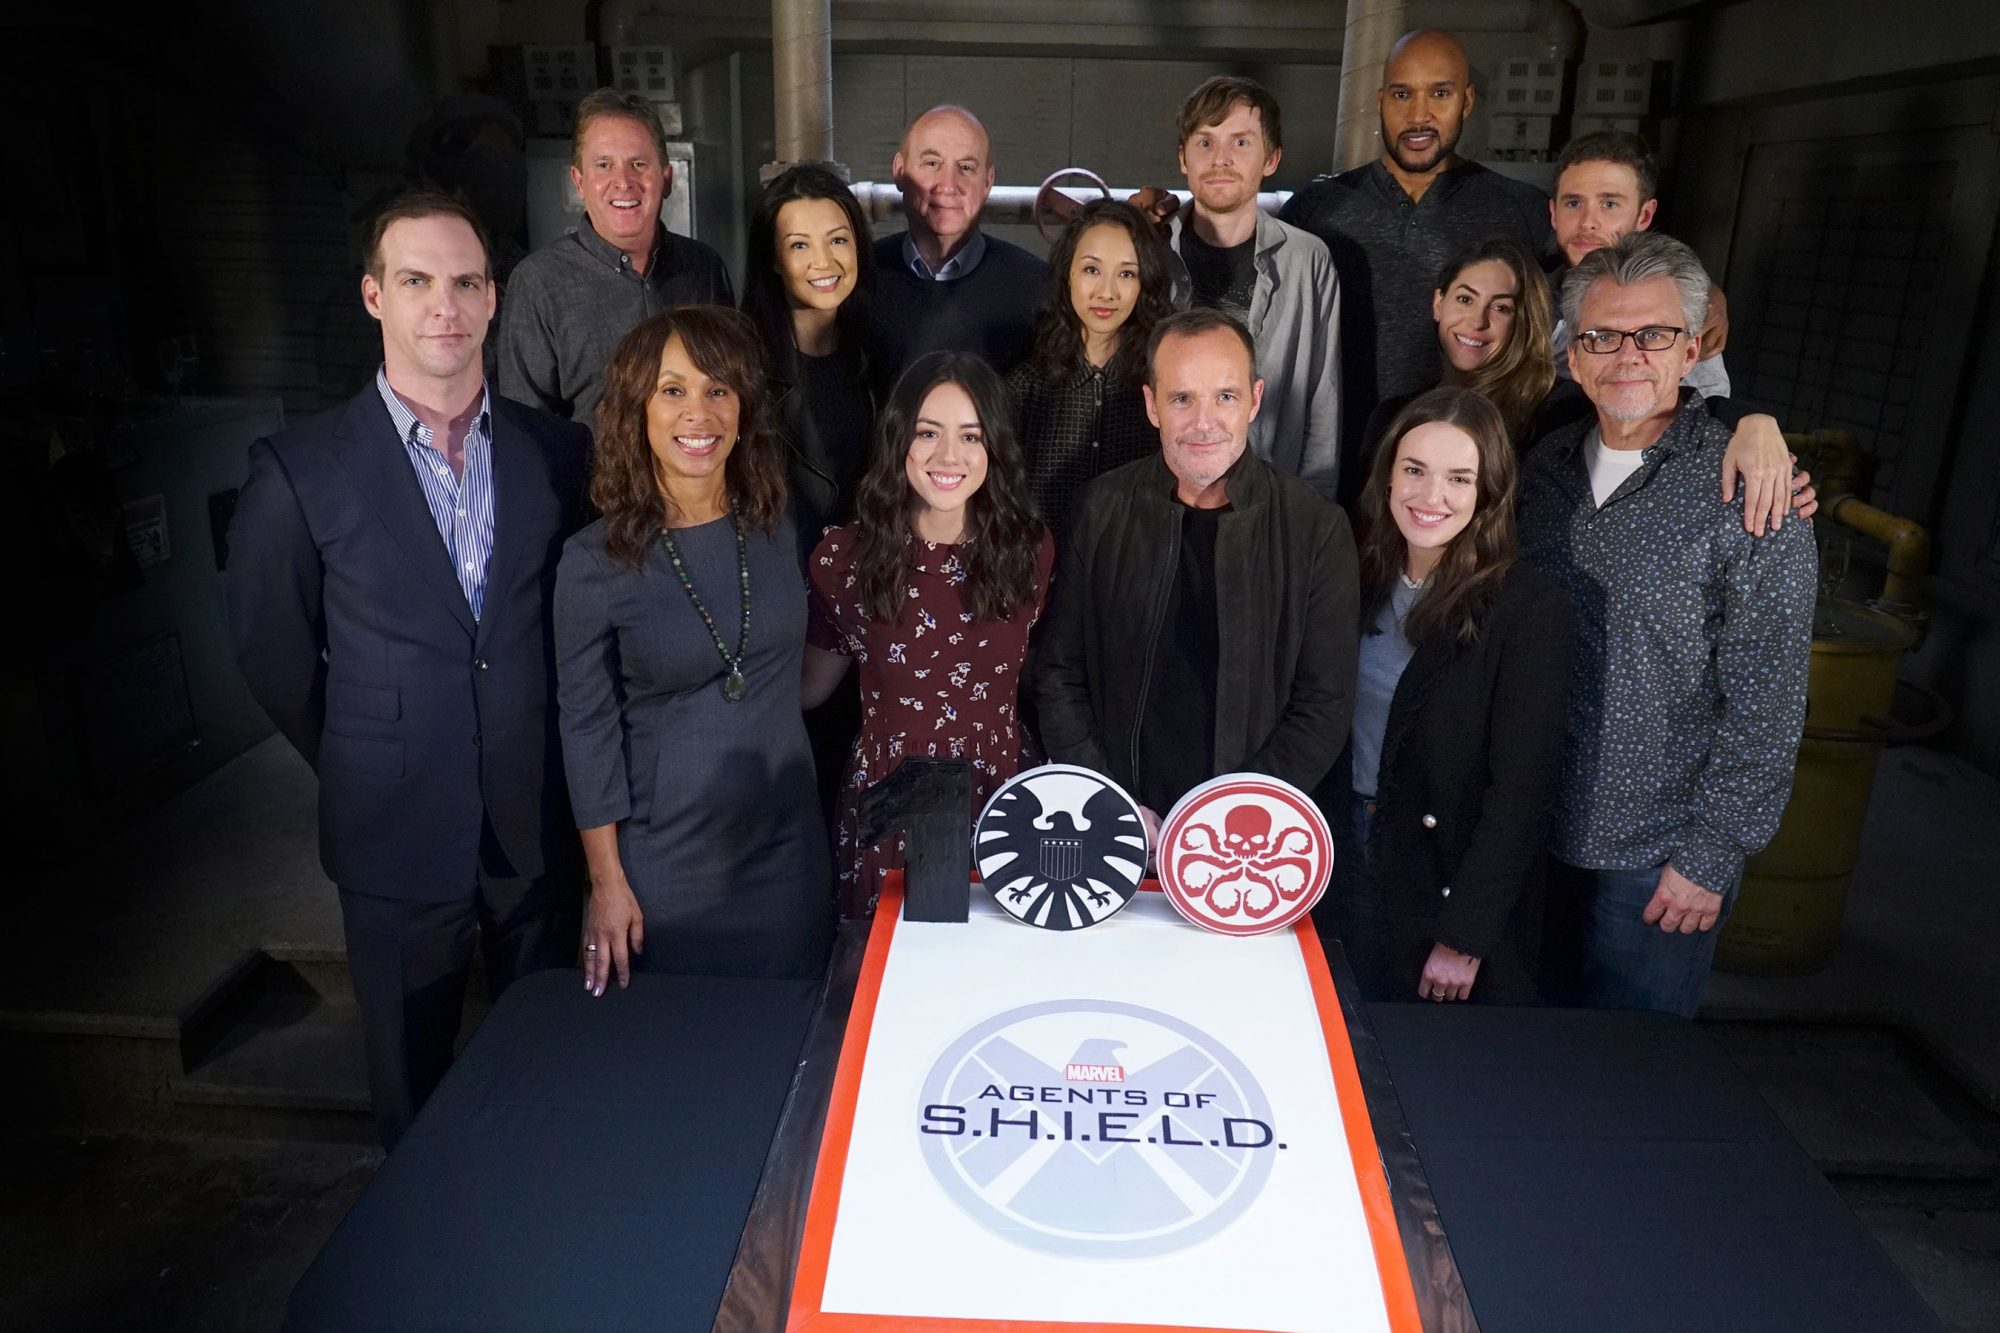 PATRICK MORAN (PRESIDENT, ABC STUDIOS), GARRY A. BROWN (CO-EXECUTIVE PRODUCER), CHANNING DUNGEY (PRESIDENT, ABC ENTERTAINMENT), MING-NA WEN, CHLOE BENNET, JEPH LOEB (EXECUTIVE PRODUCER), MAURISSA TANCHAROEN (EXECUTIVE PRODUCER), CLARK GREGG, JED WHEDON (E